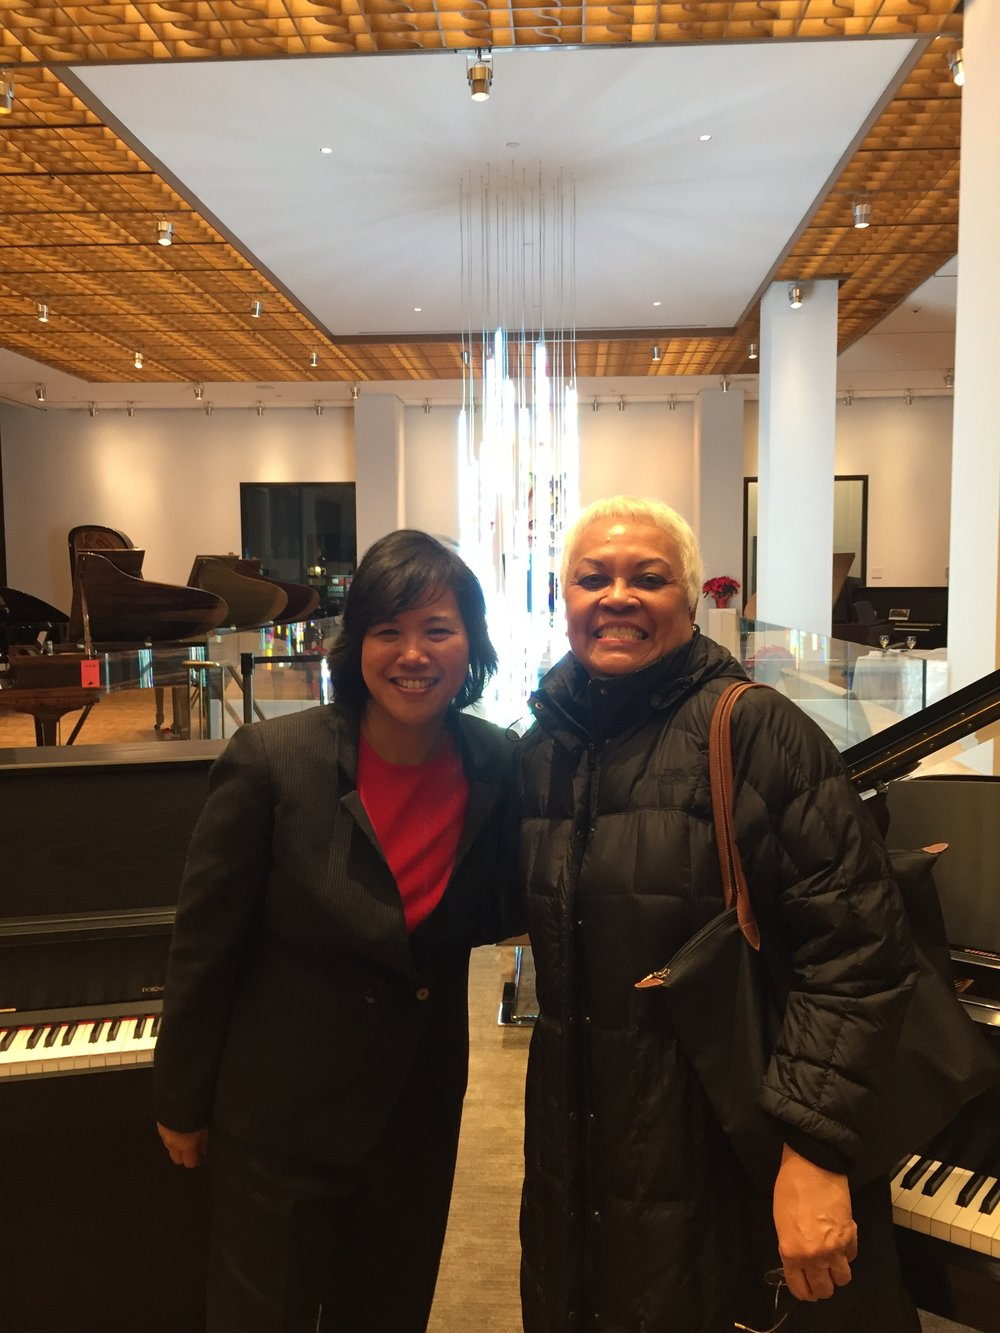 MEANYC Executive Board Secretary Elena Foronda with Karen Beluso. Annual Autumn Event at Steinway Hall, NYC- November 28th, 2016